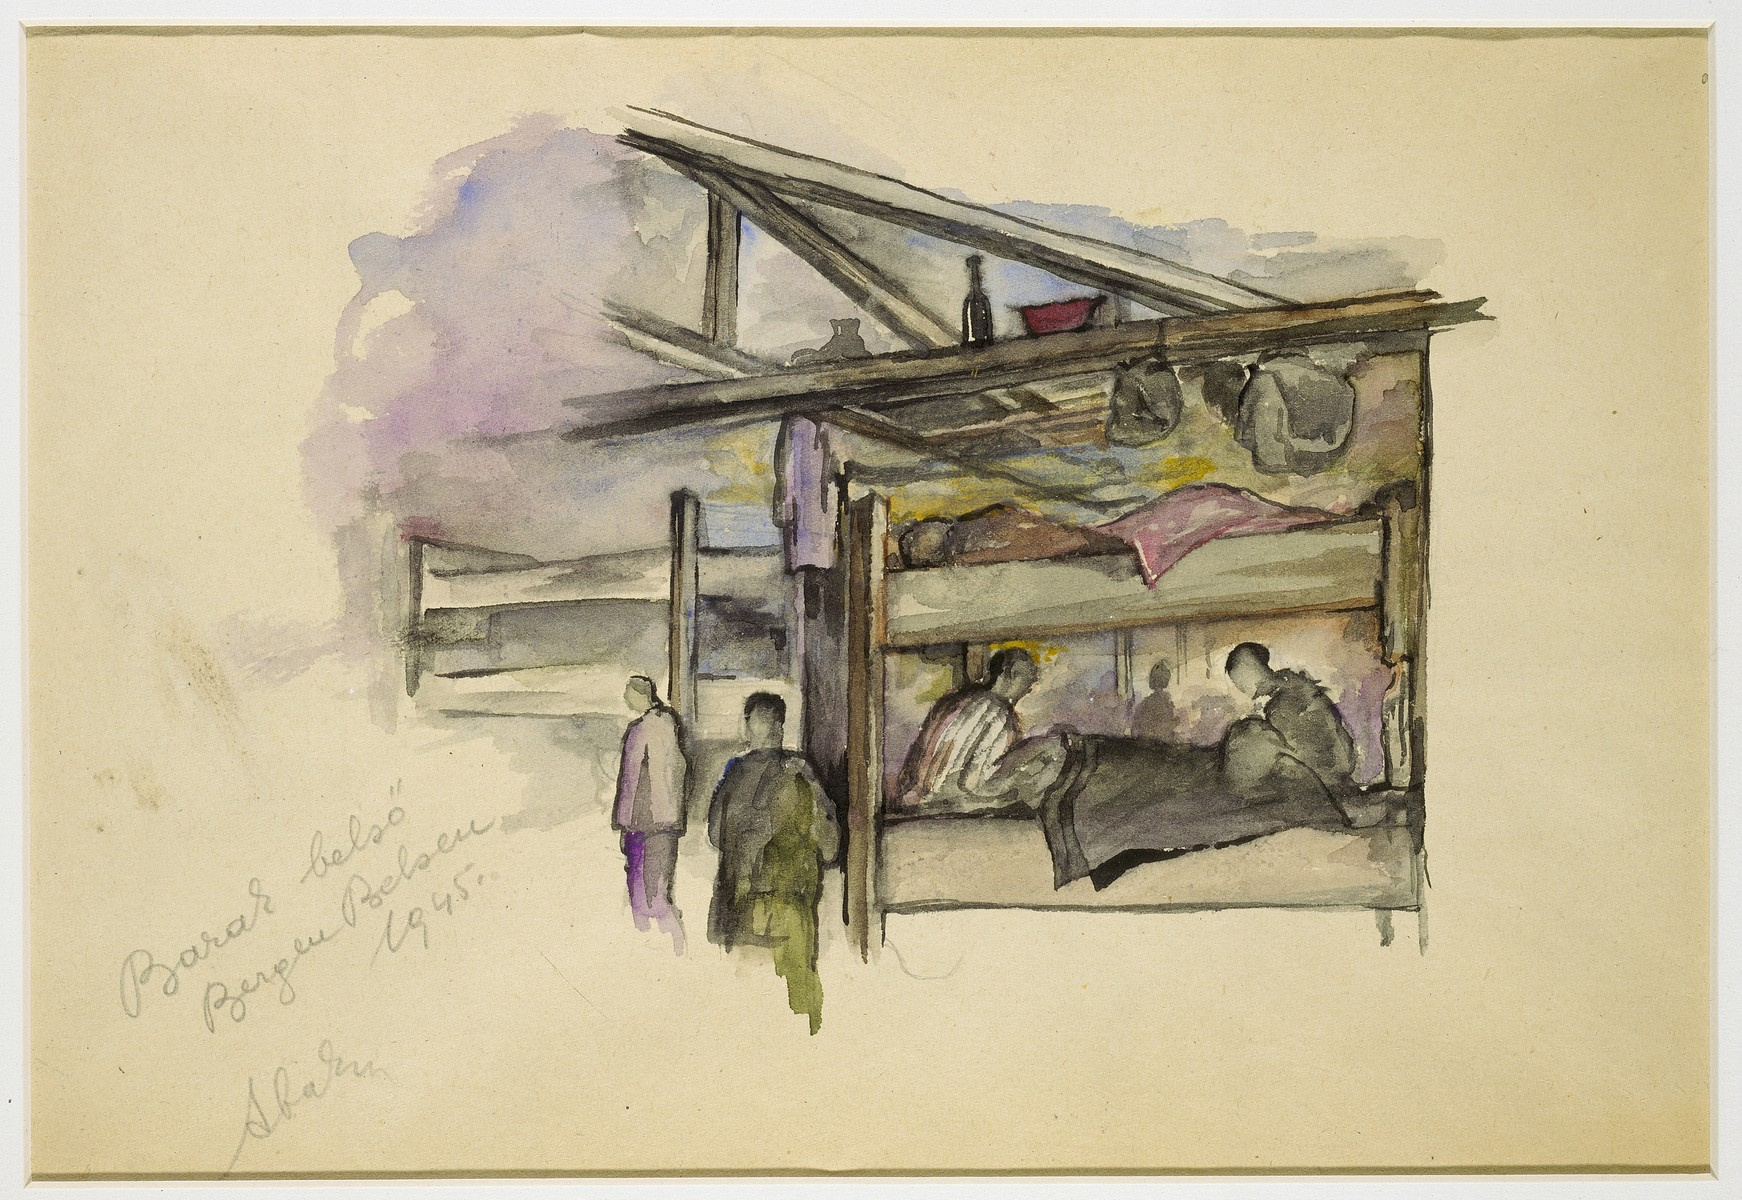 Holocaust art by Ervin Abadi. Watercolor and pencil drawing.  Ervin Abadi, a Hungarian Jew from Budapest, was an aspiring young artist when WWII began.  He was drafted into the Hungarian labor service in the early 1940s.  Abadi managed to escape, but  was recaptured and immediately deported to Bergen-Belsen.  When the camp was liberated, his condition was such that he required extended hospitalization.  During his convalescence, he created dozens of works of holocaust art, including ink drawings, pencil and ink sketches and  watercolors. After recuperating Abadi returned to Budapest, where he published a collection of his watercolors in 1946.  After becoming disillusioned with the communist regime in Hungary, he moved to Israel, where he continued to publish in Hungarian and Hebrew.  He died in Israel in 1980.